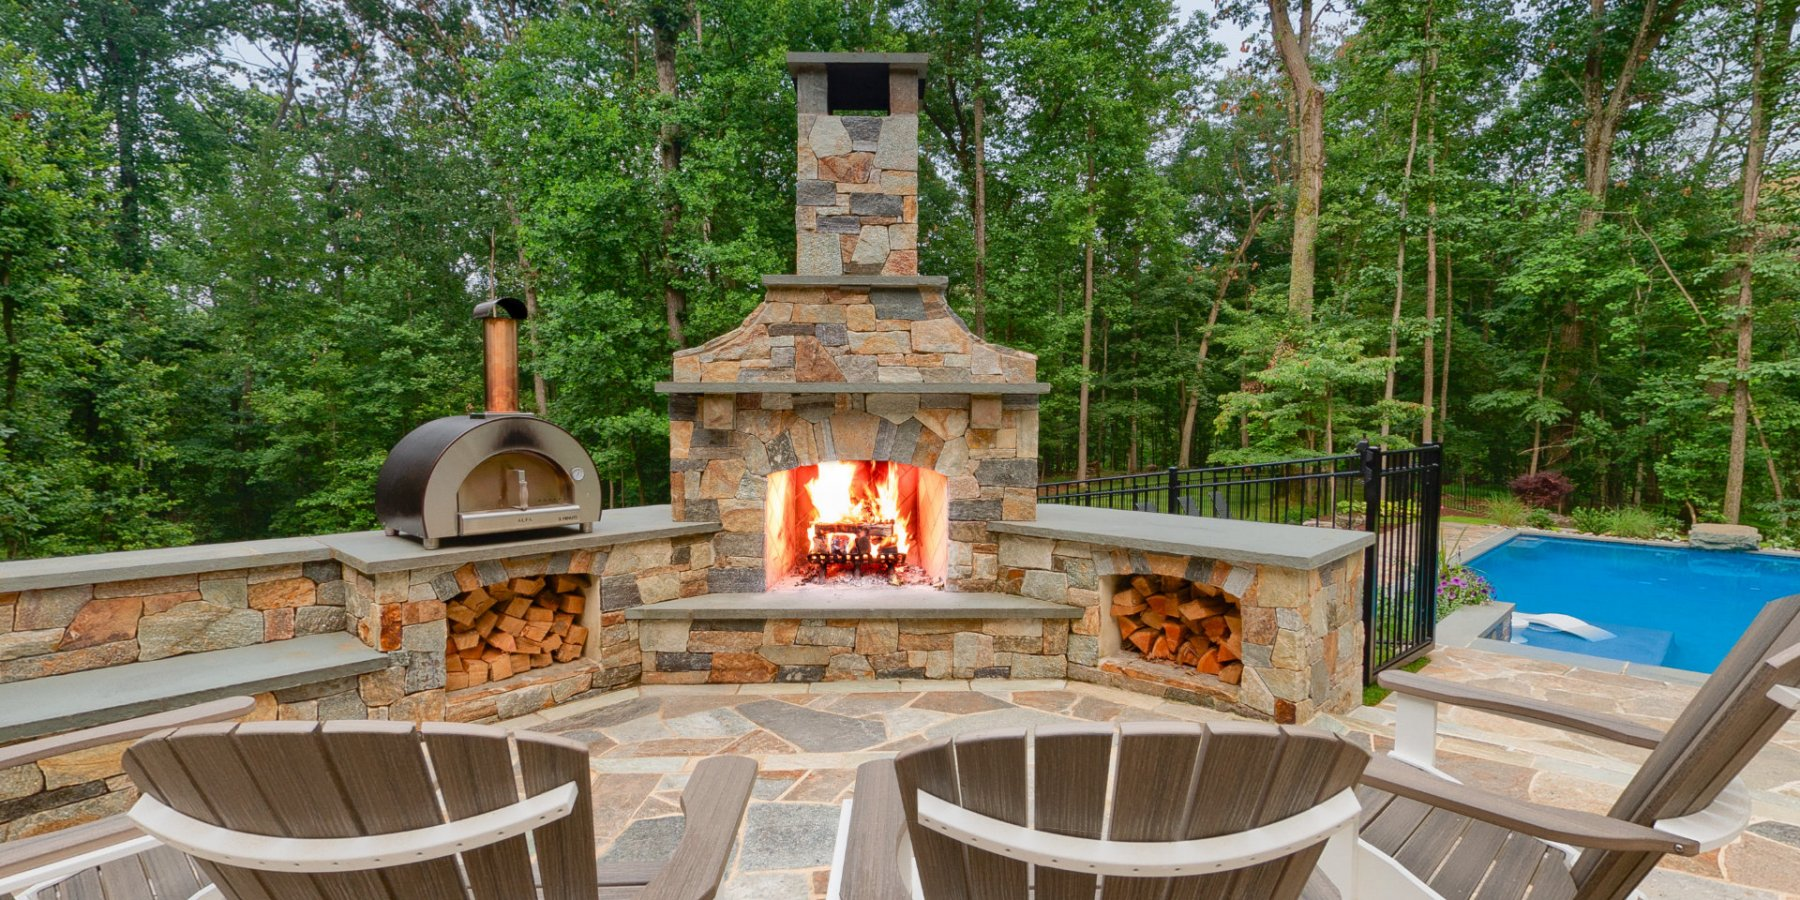 Fireplace-Day-Behind-Chairs-a-690A0048b